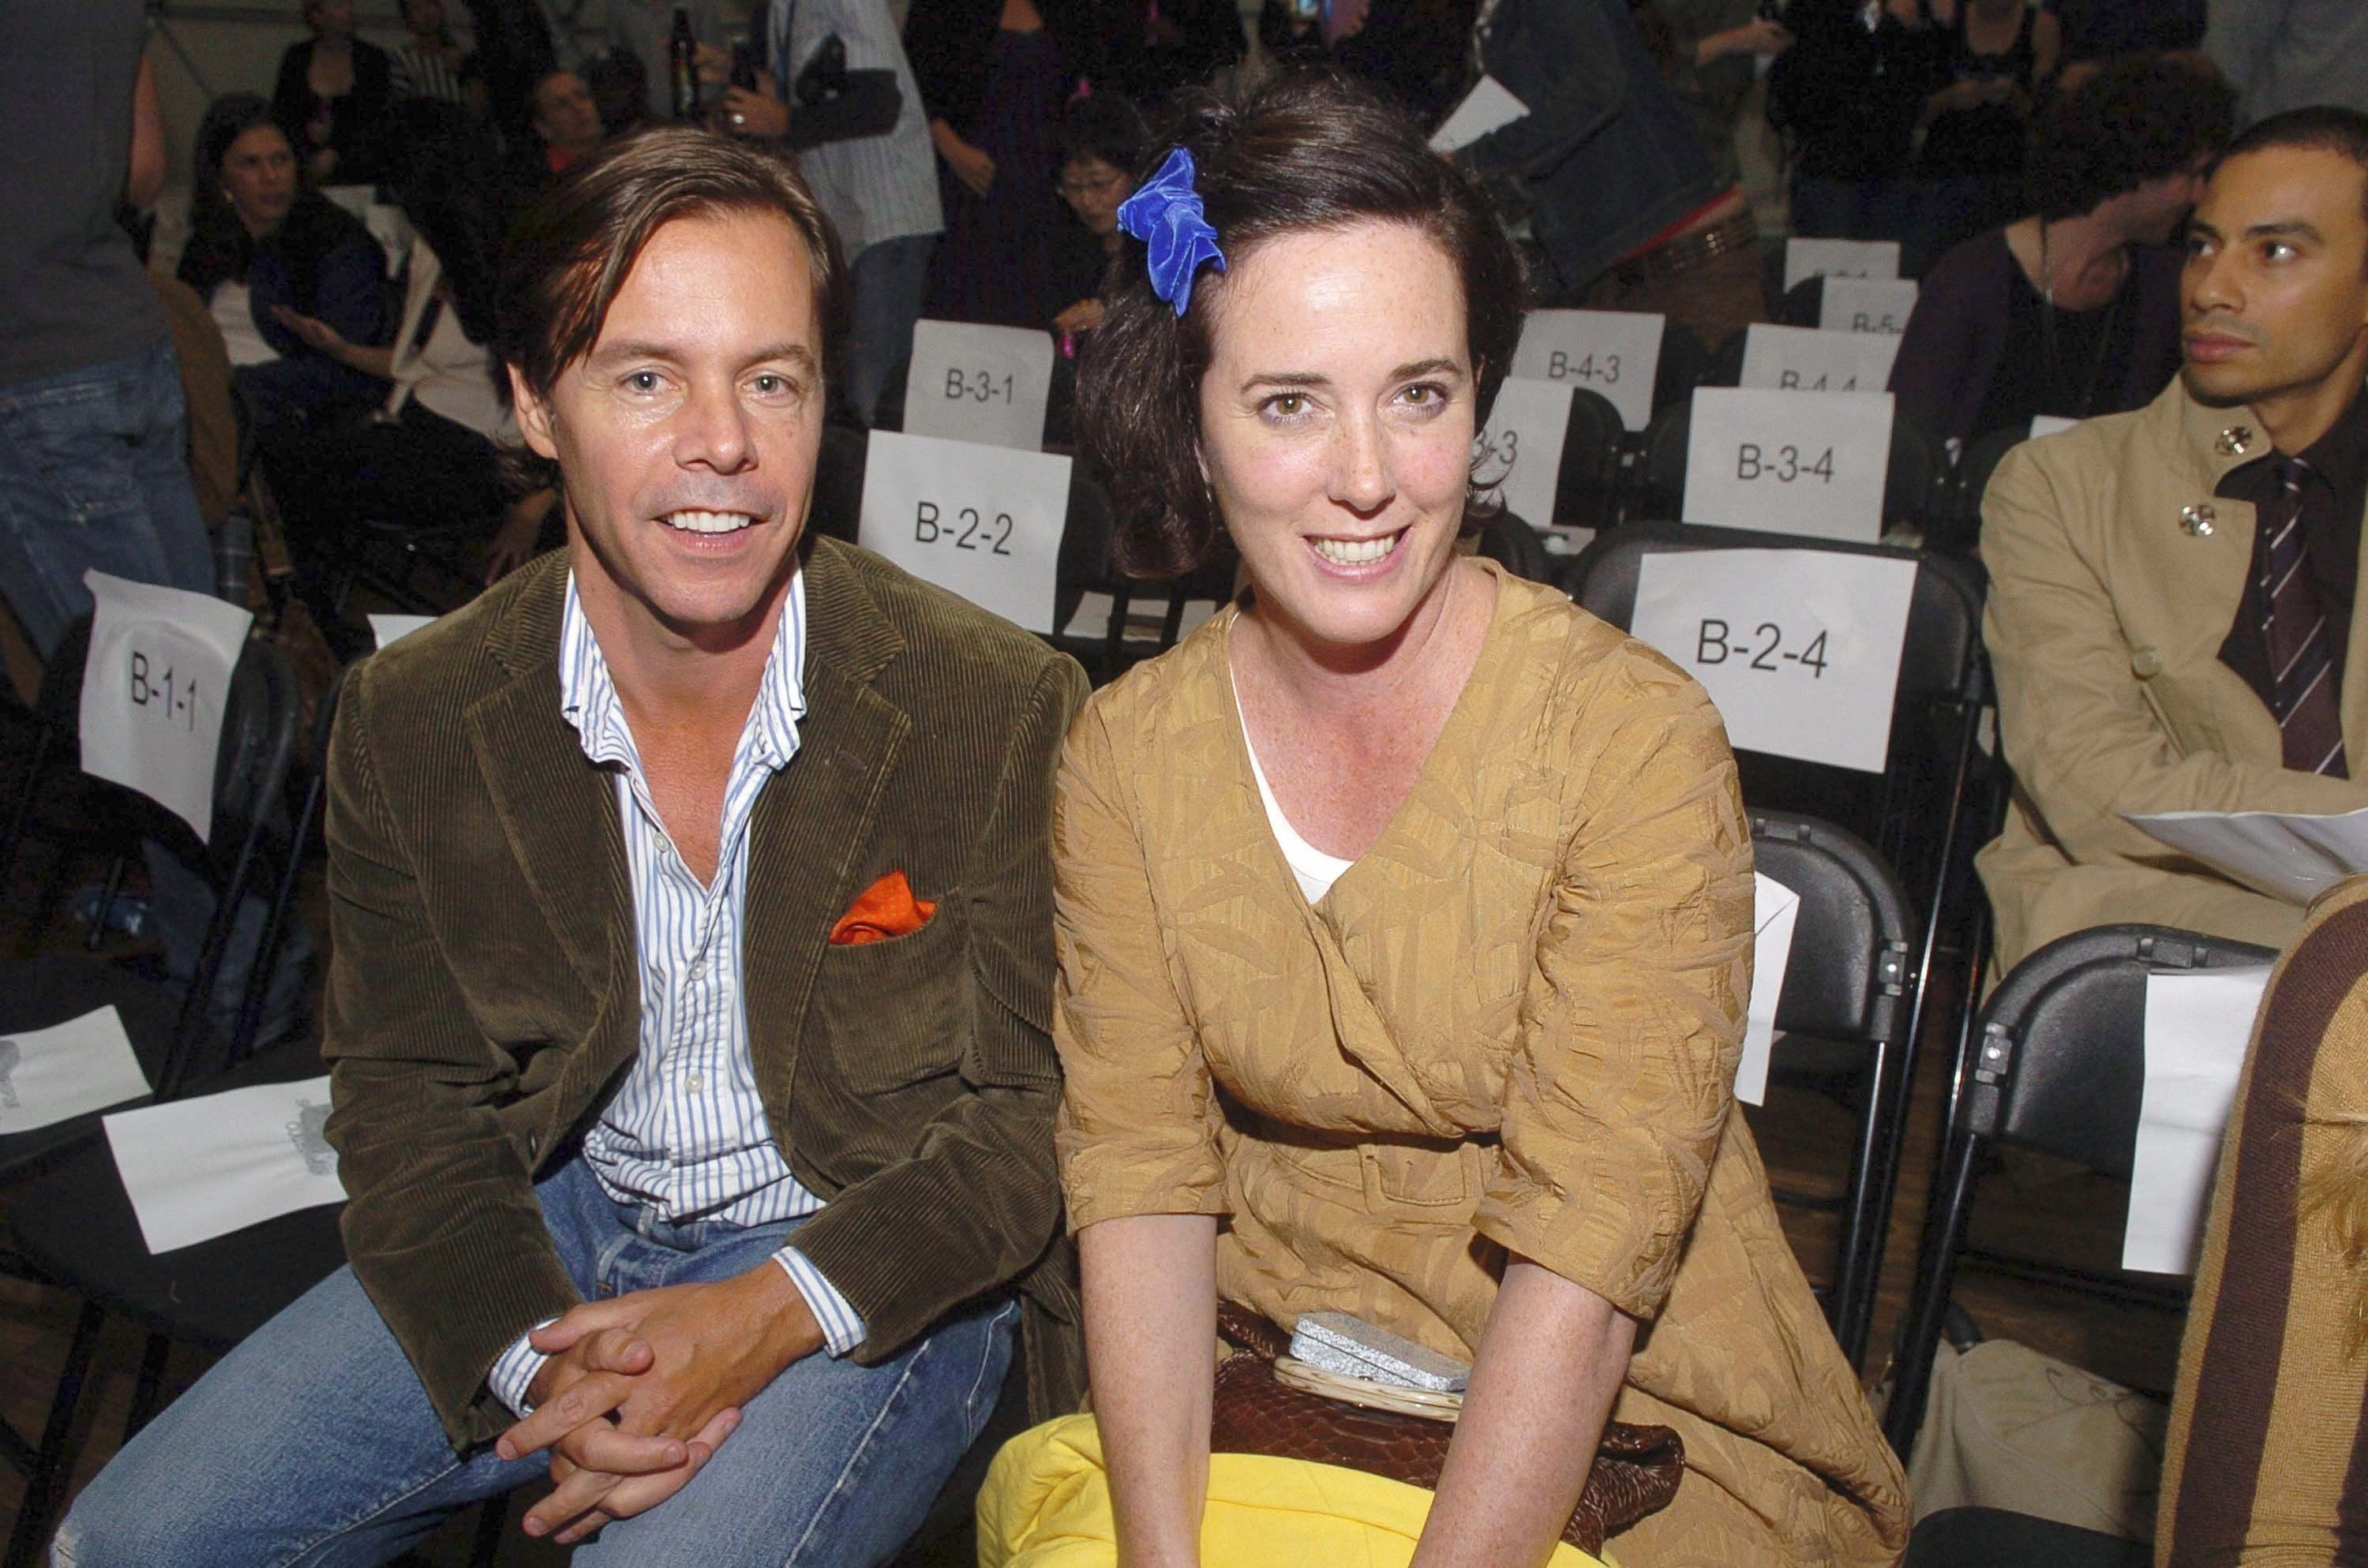 Iconic Fashion Designer, Kate Spade Found Dead In Her Apartment